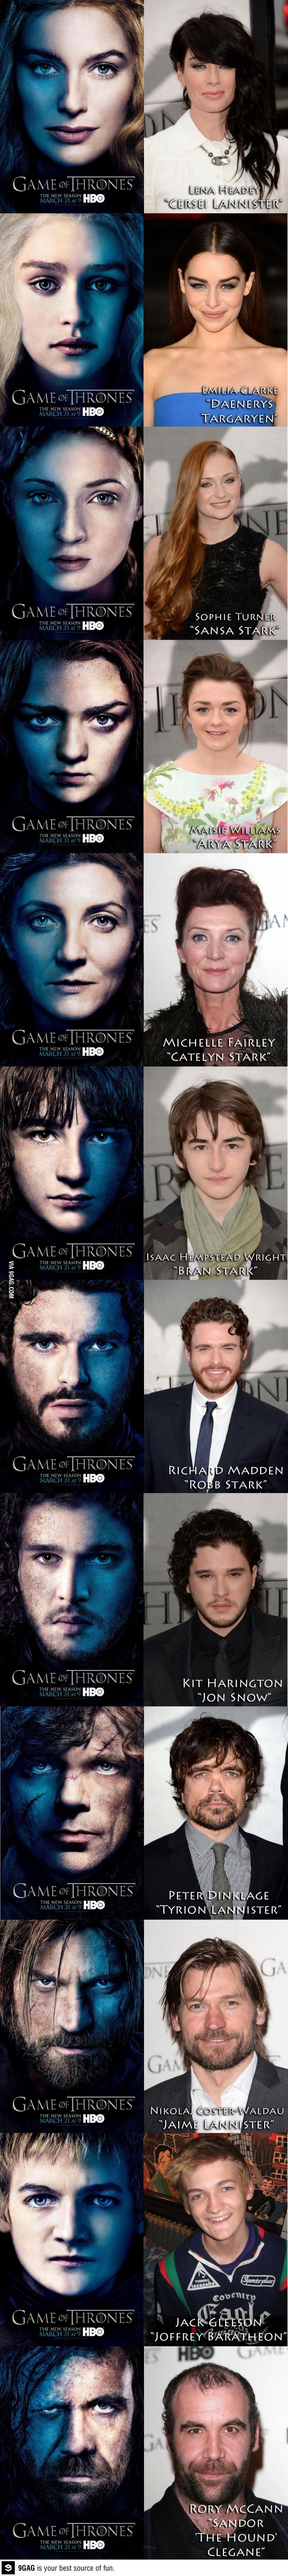 Game of Thrones - Characters vs. Actors ♊️